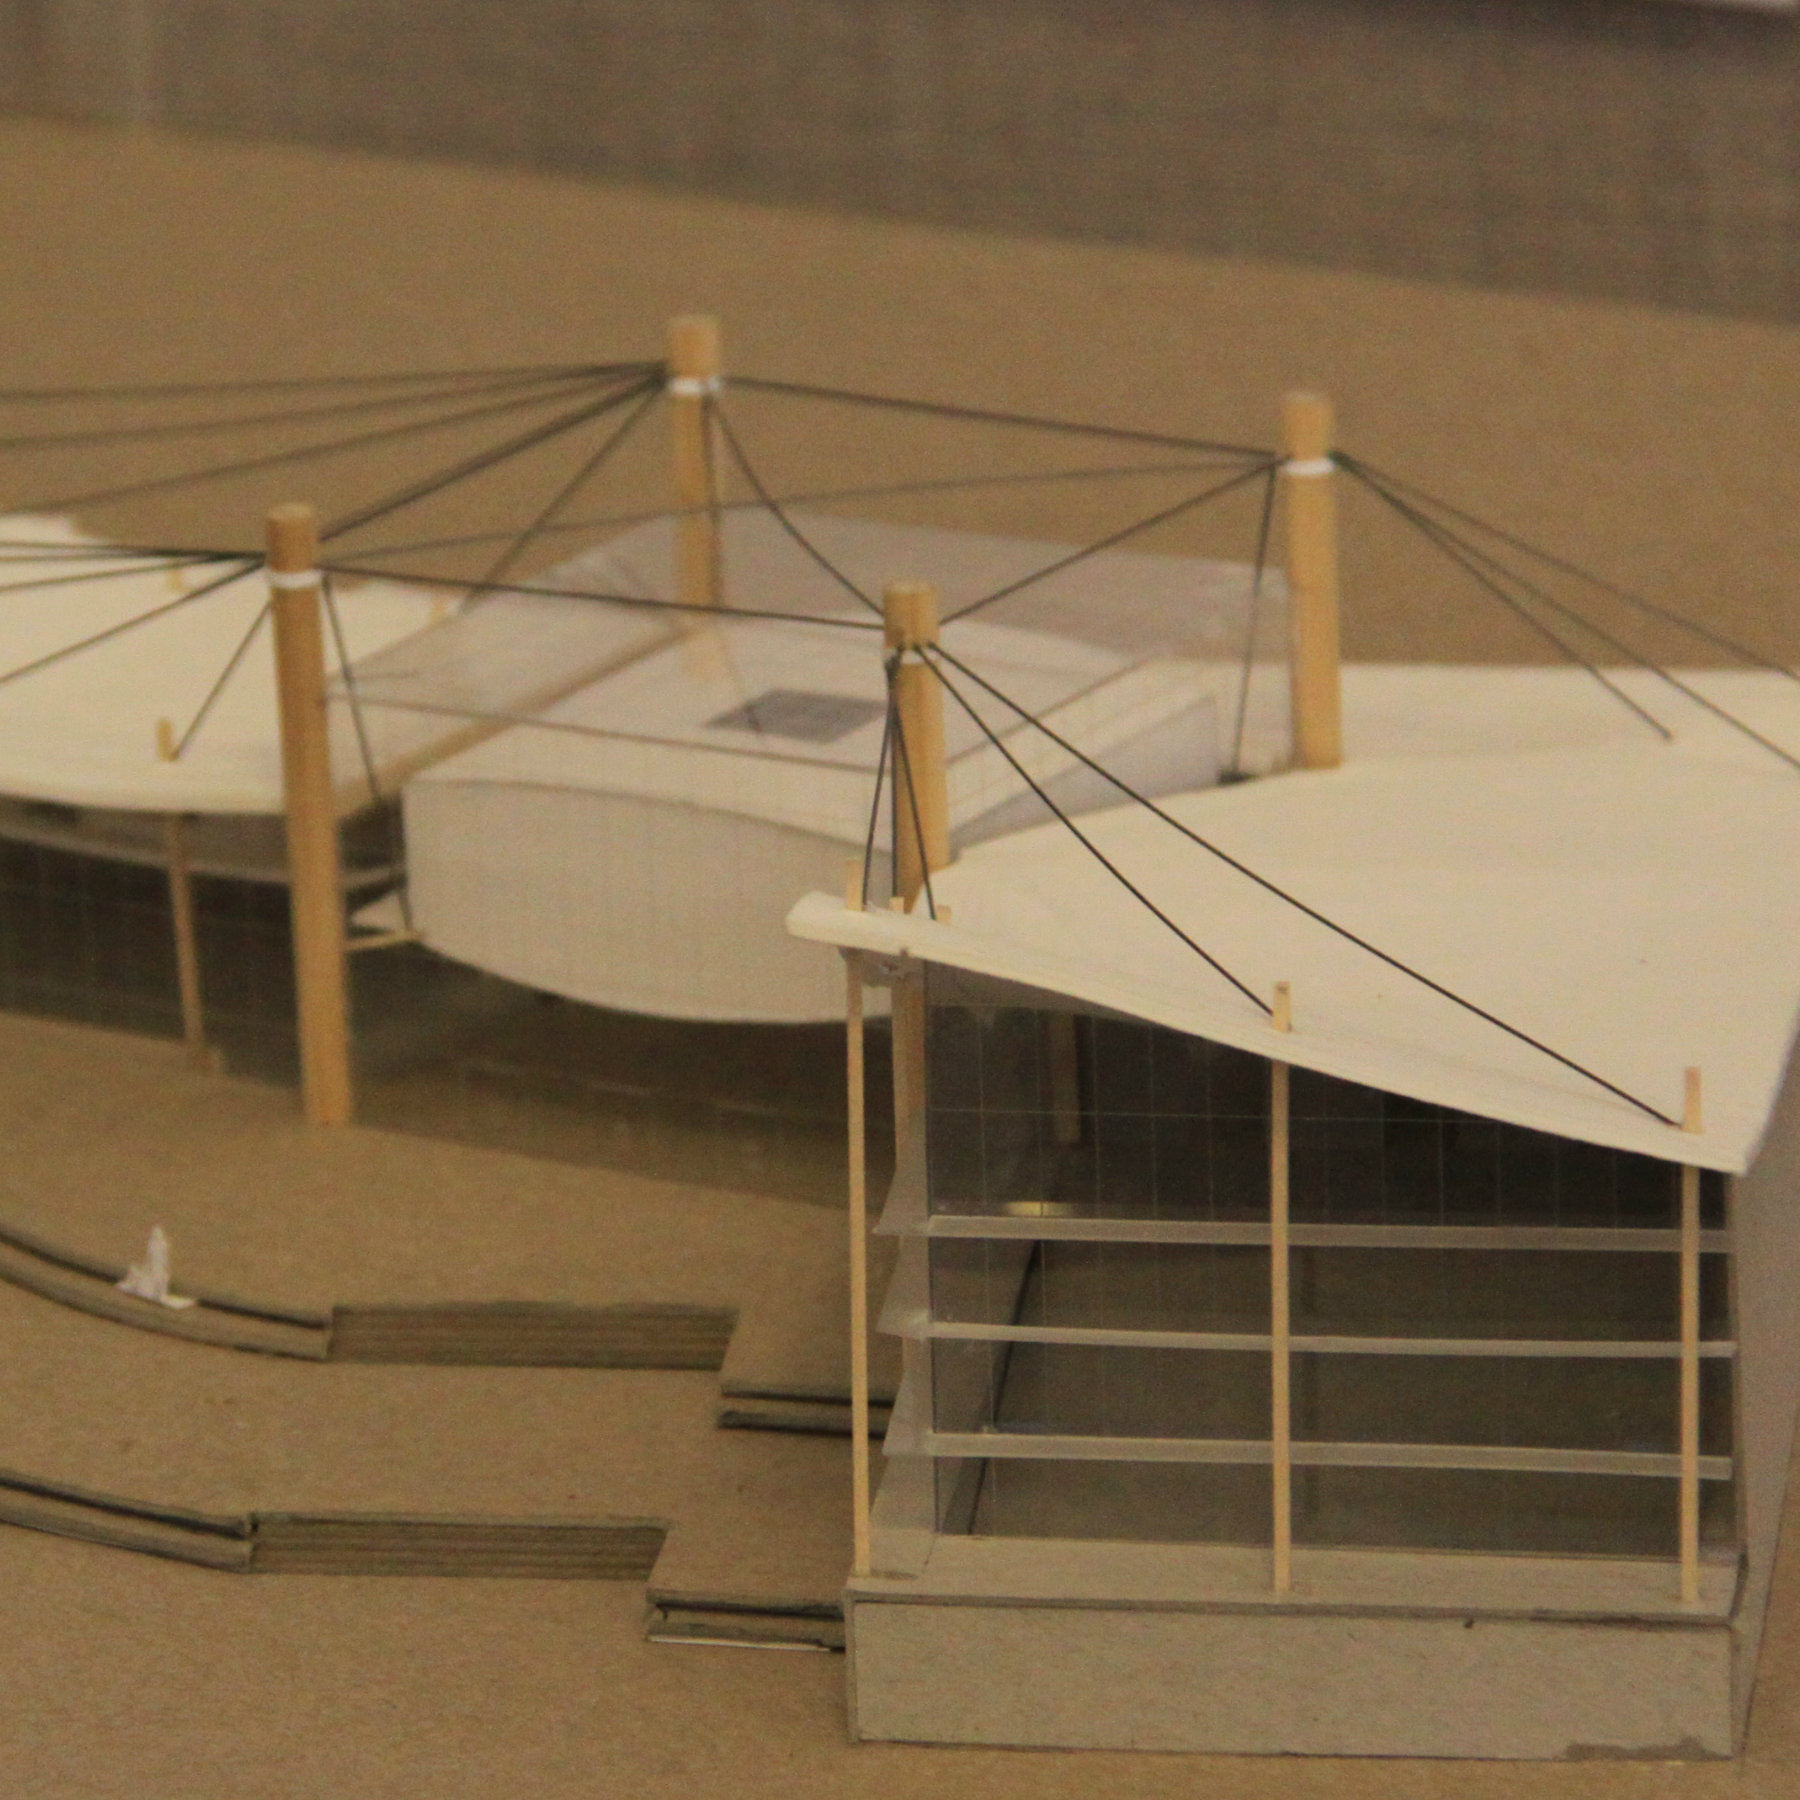 model of a building using tension wires